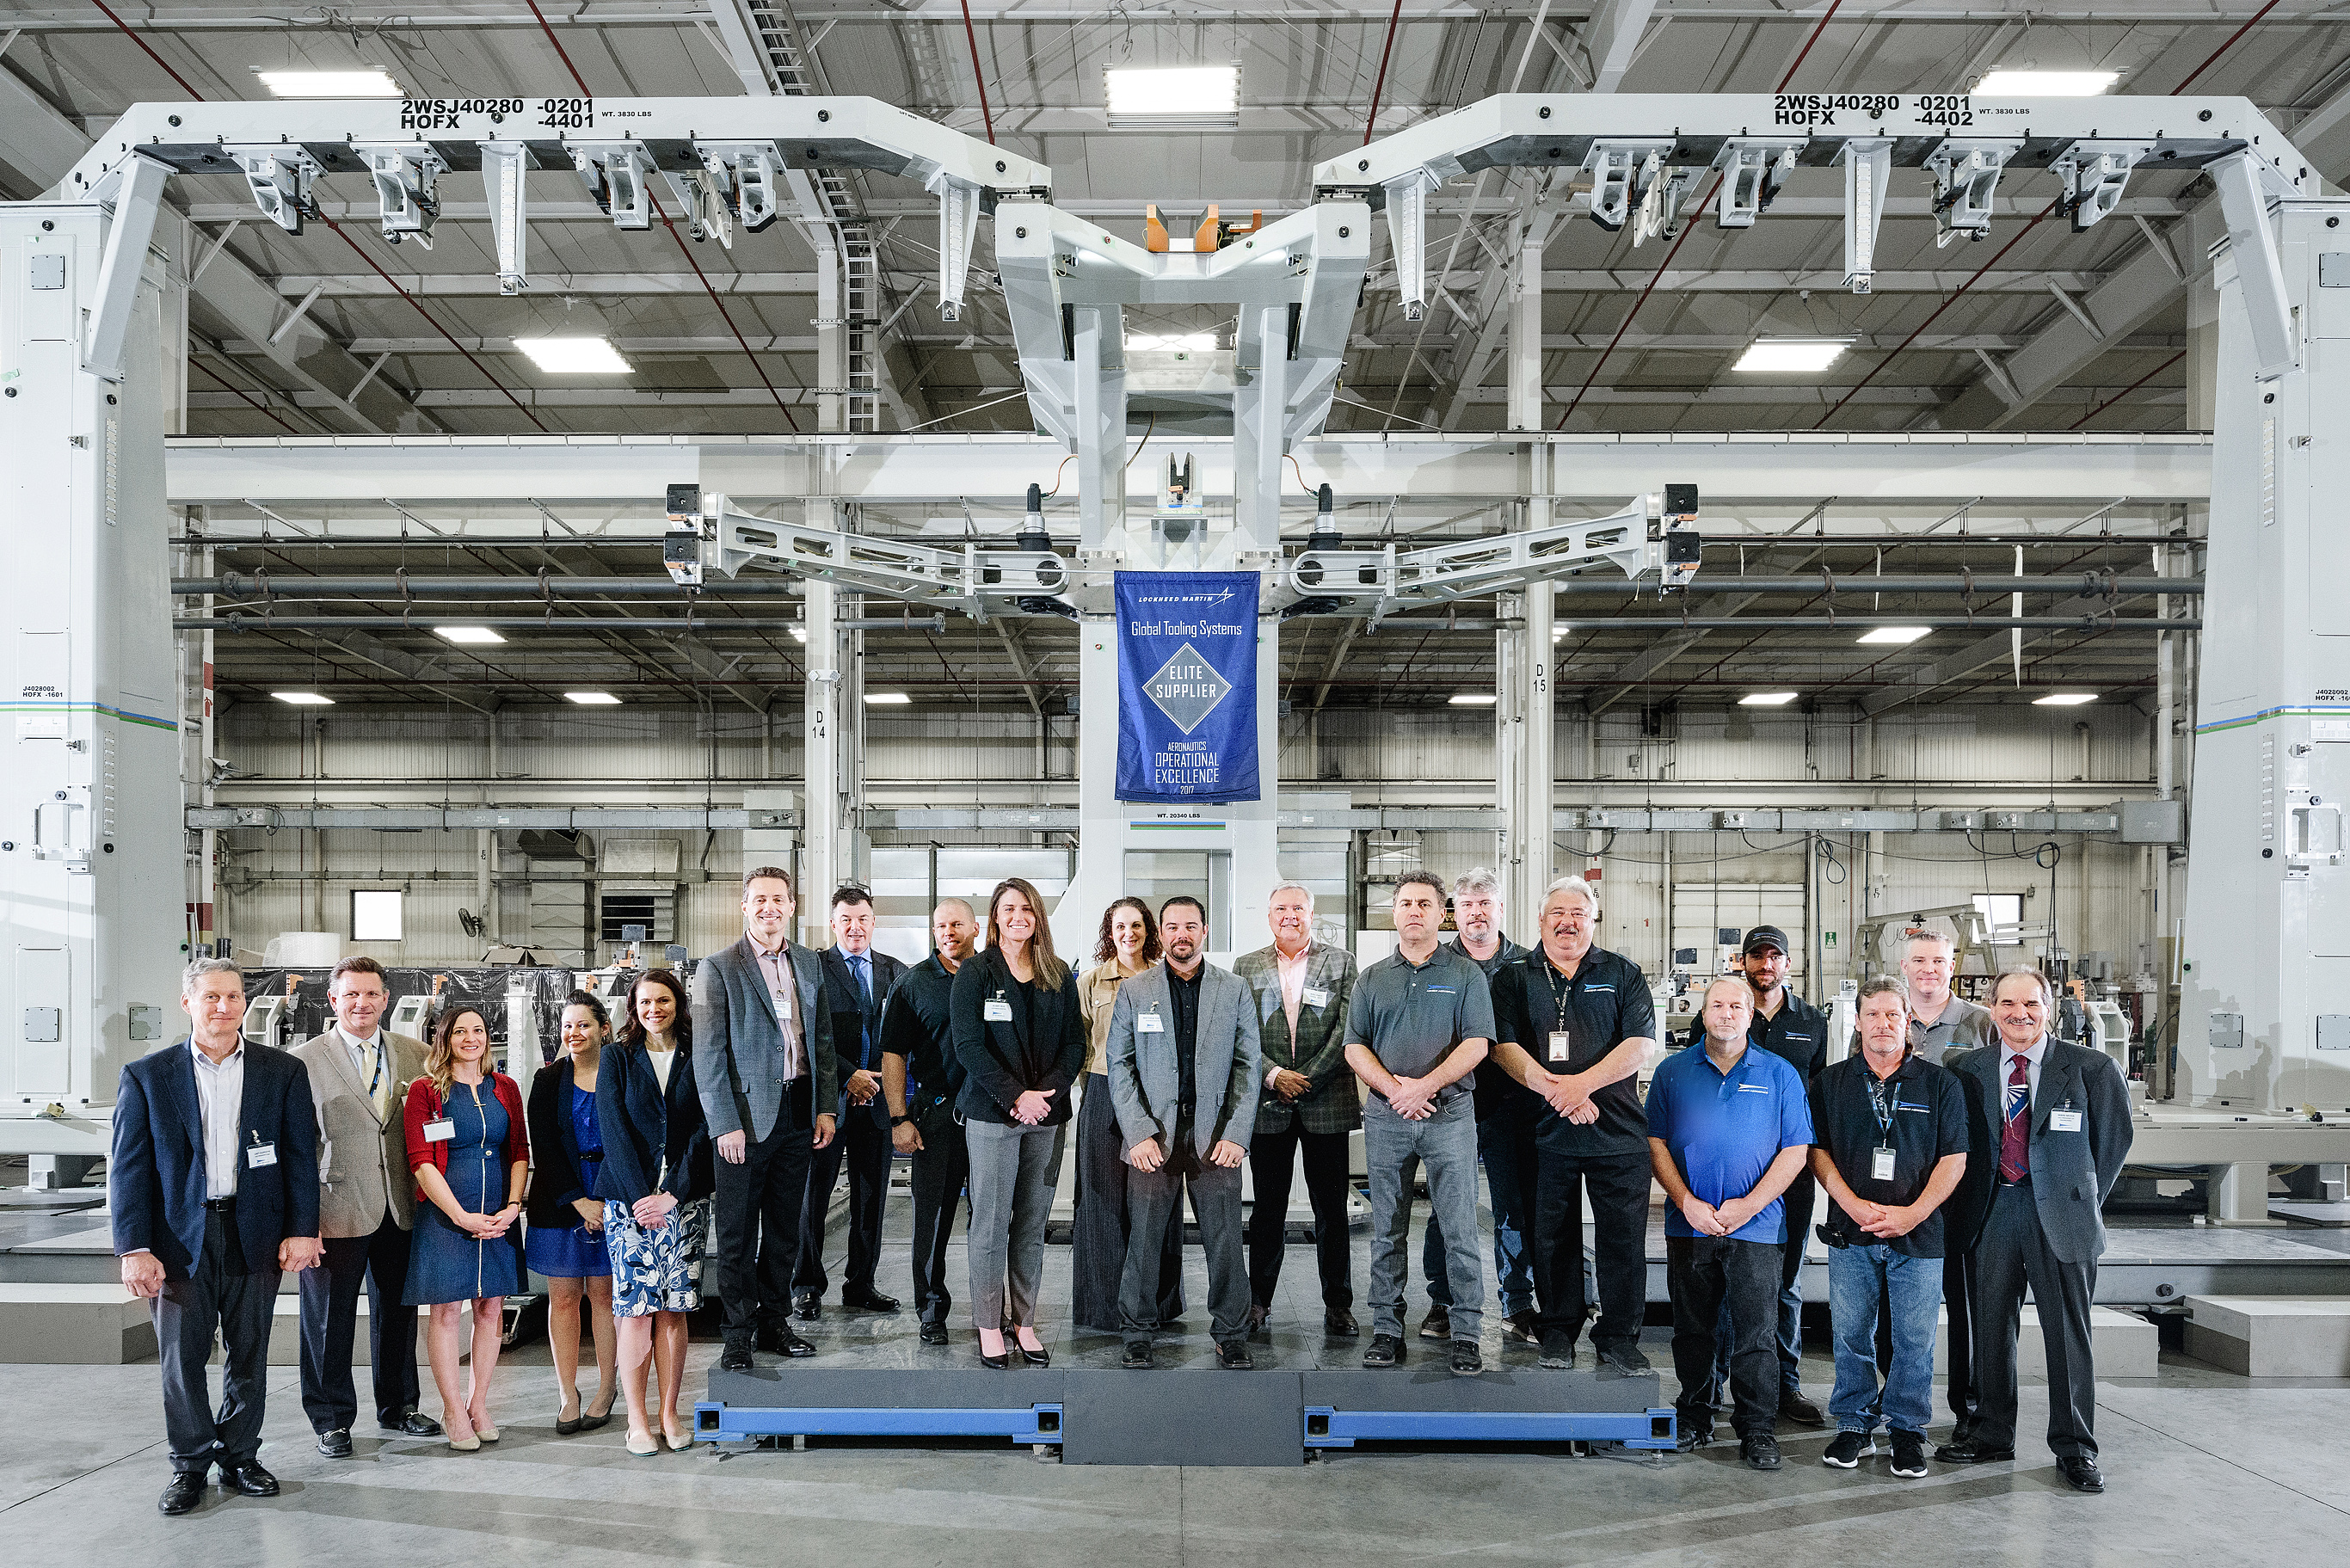 The Ascent factory tour concluded at a flexible wing holding fixture, slated to serve on the Lockheed Martin's F-35 assembly line in Fort Worth, which accepts multiple wing and center body scenarios to accomplish wing assembly and wing-to-body joining.